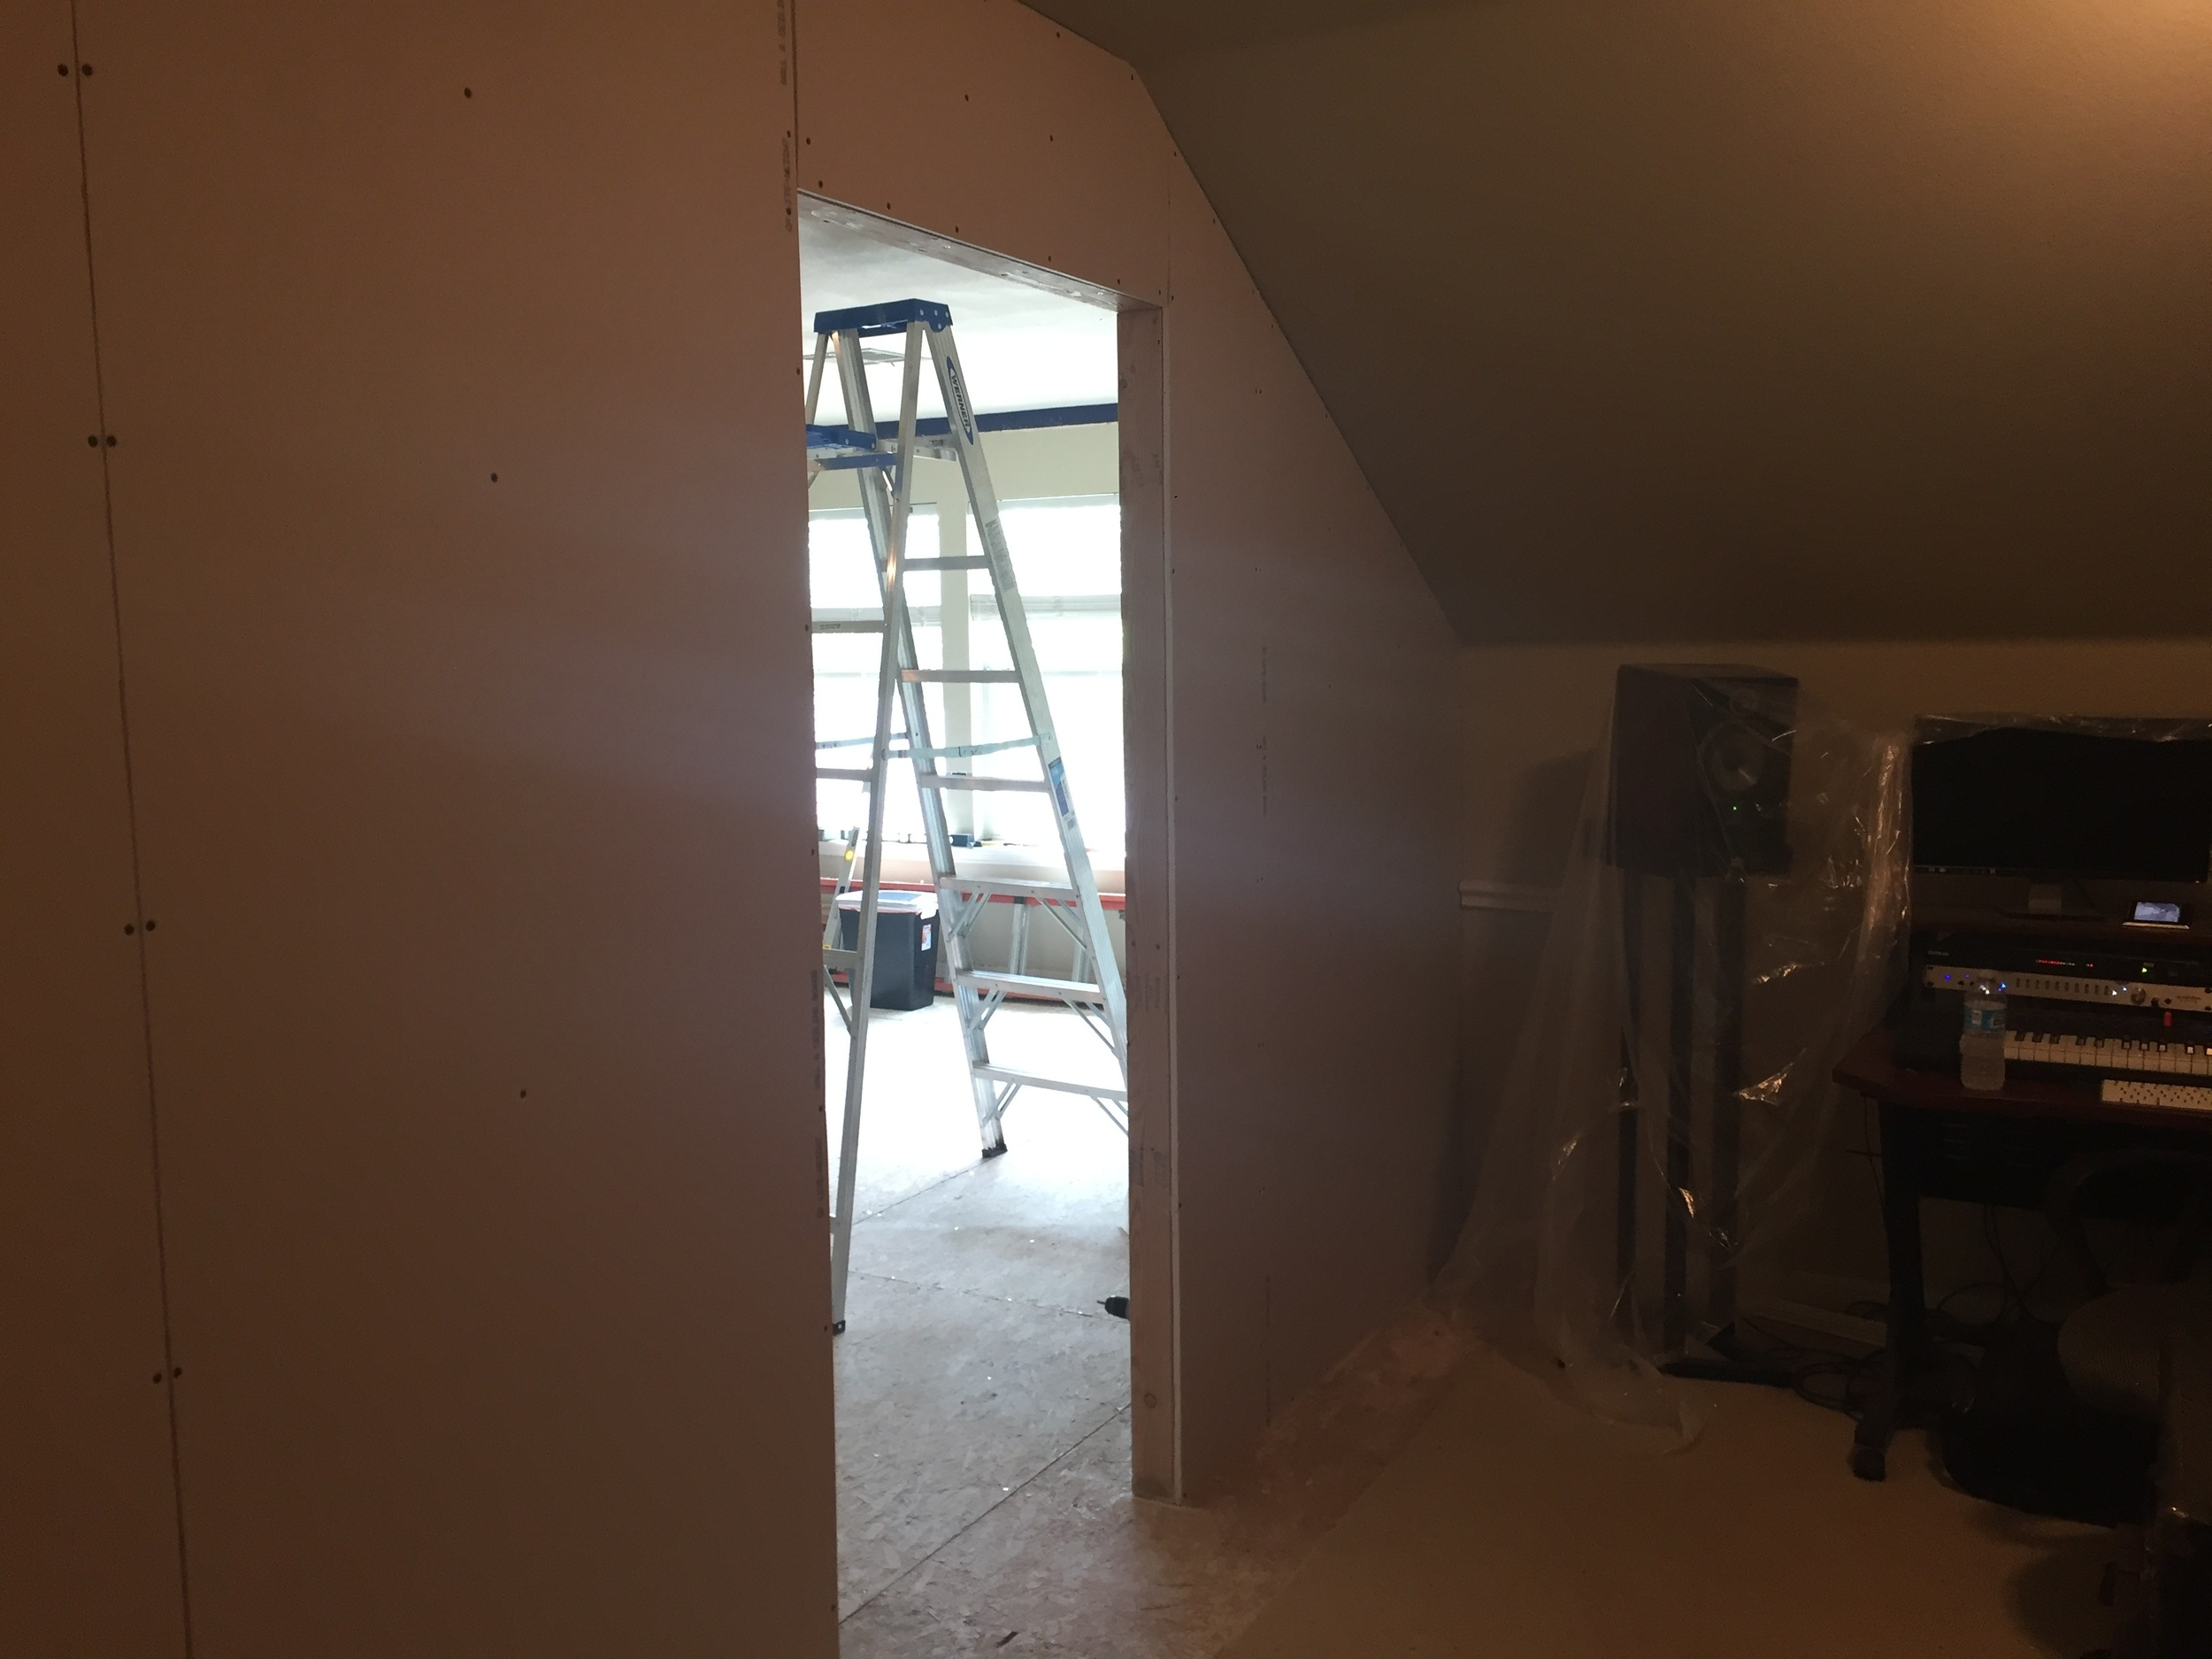 Entrance with drywall